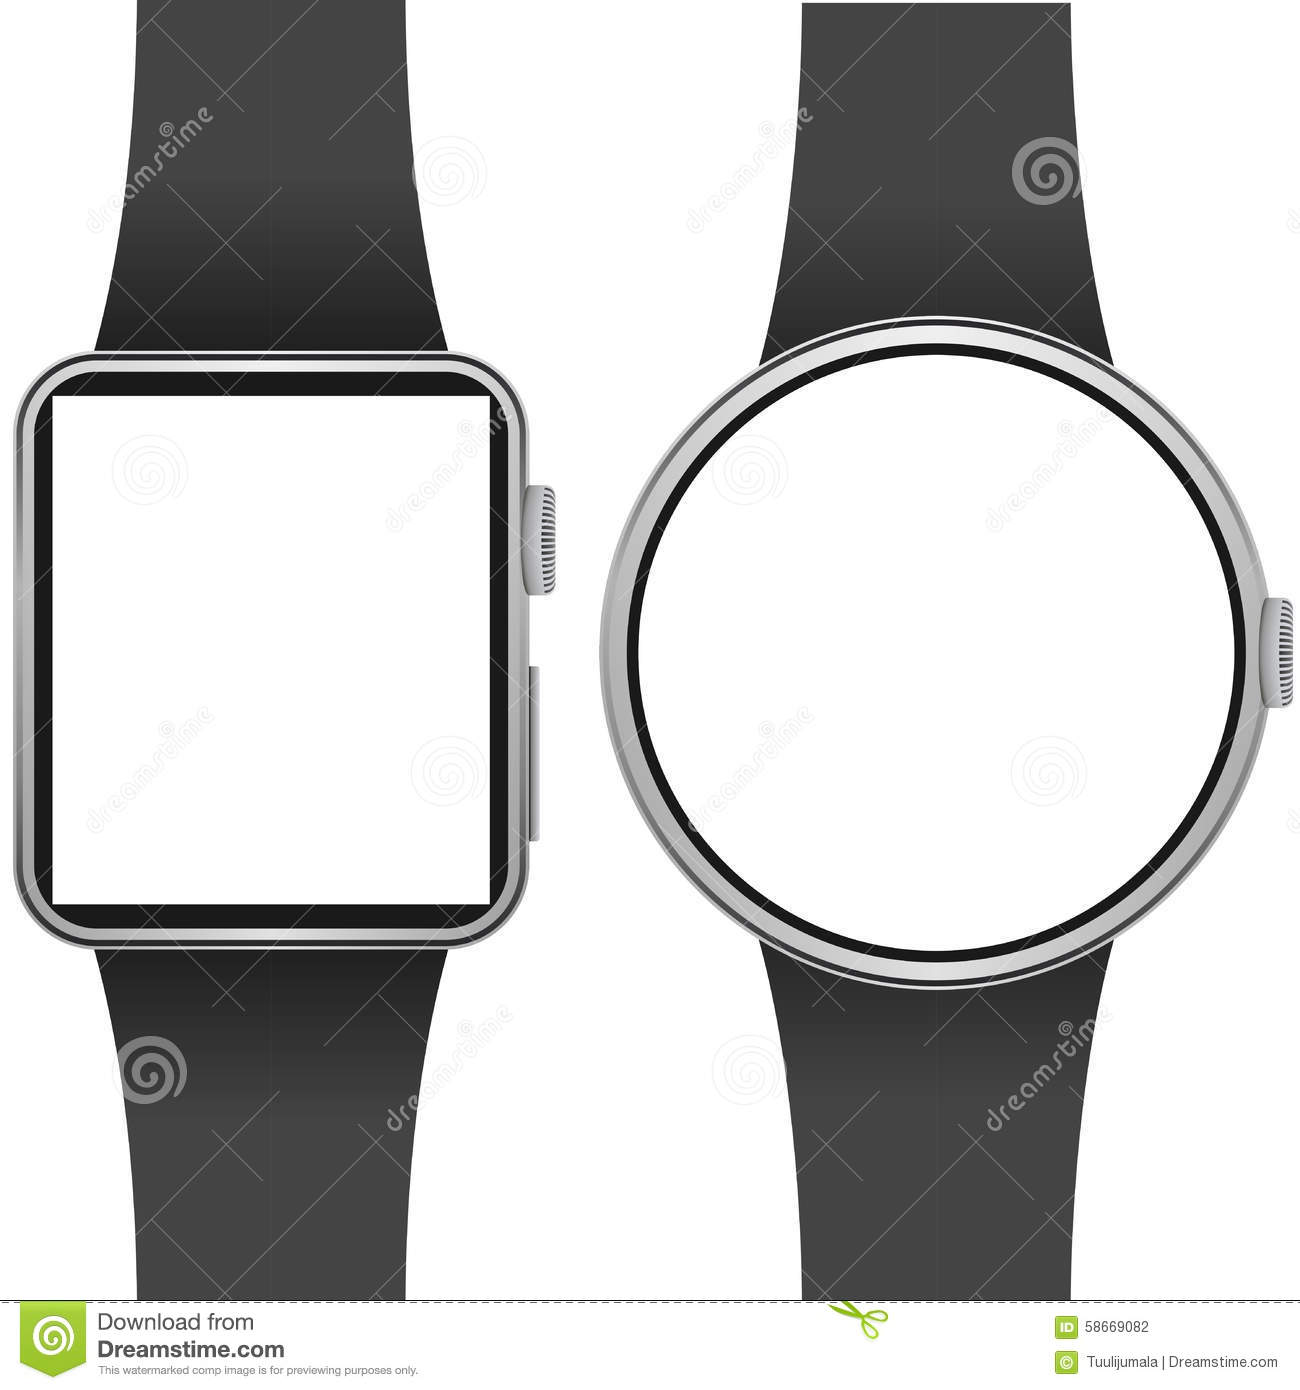 Smartwatch template with blank screen on white background.